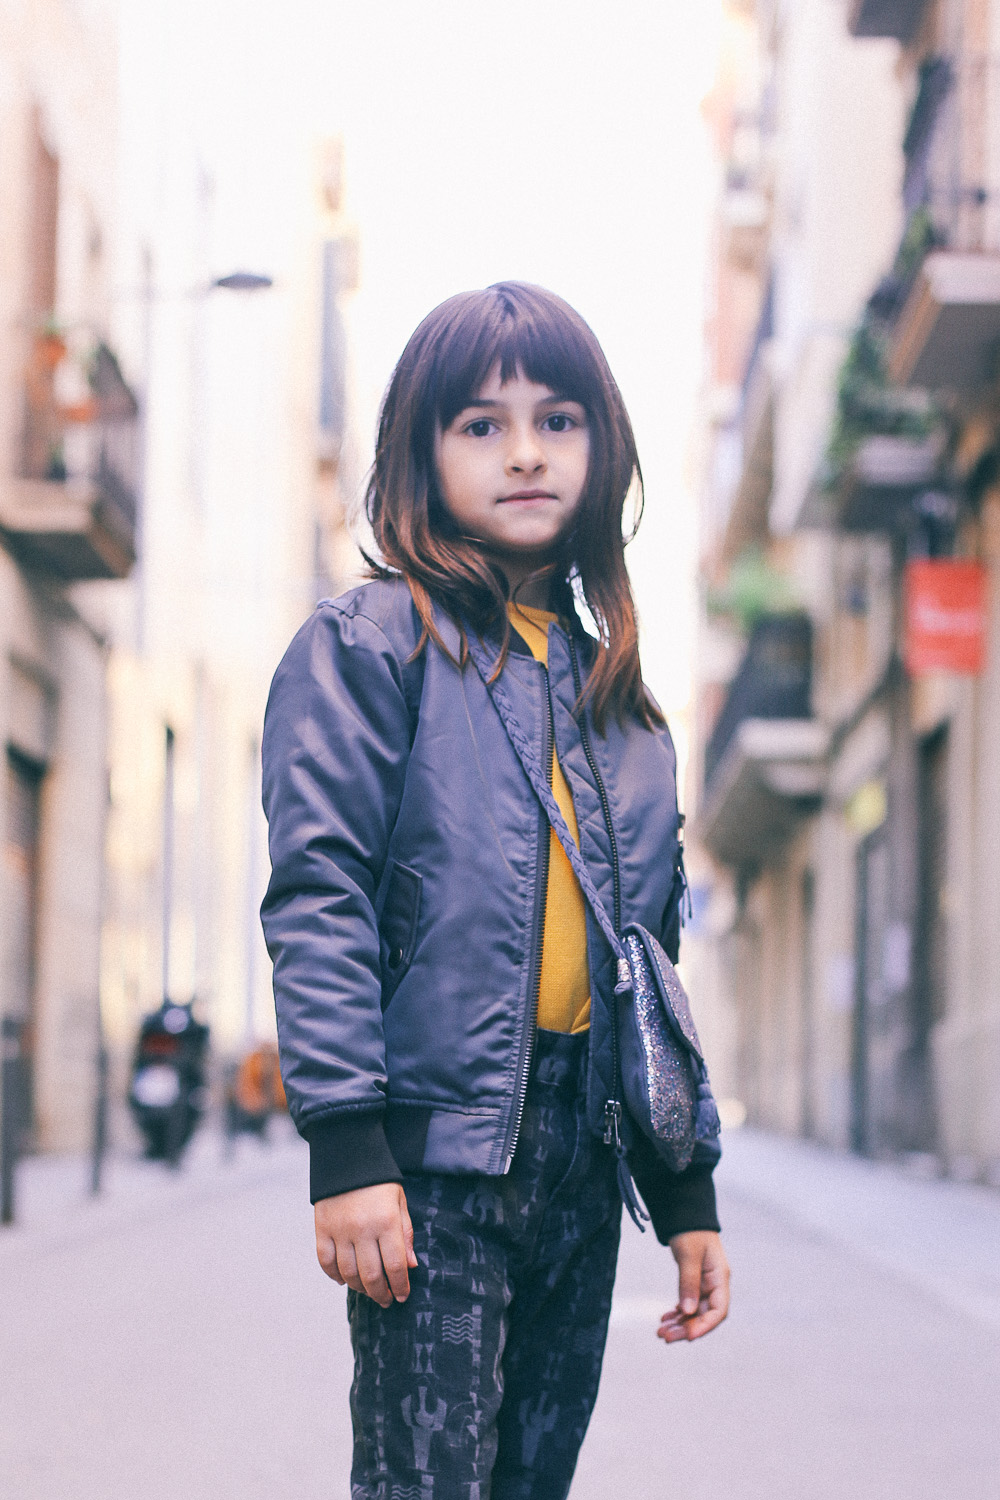 finger-in-the-nose-kids-fashion-moda-barcelona-street-style-IMG_0880